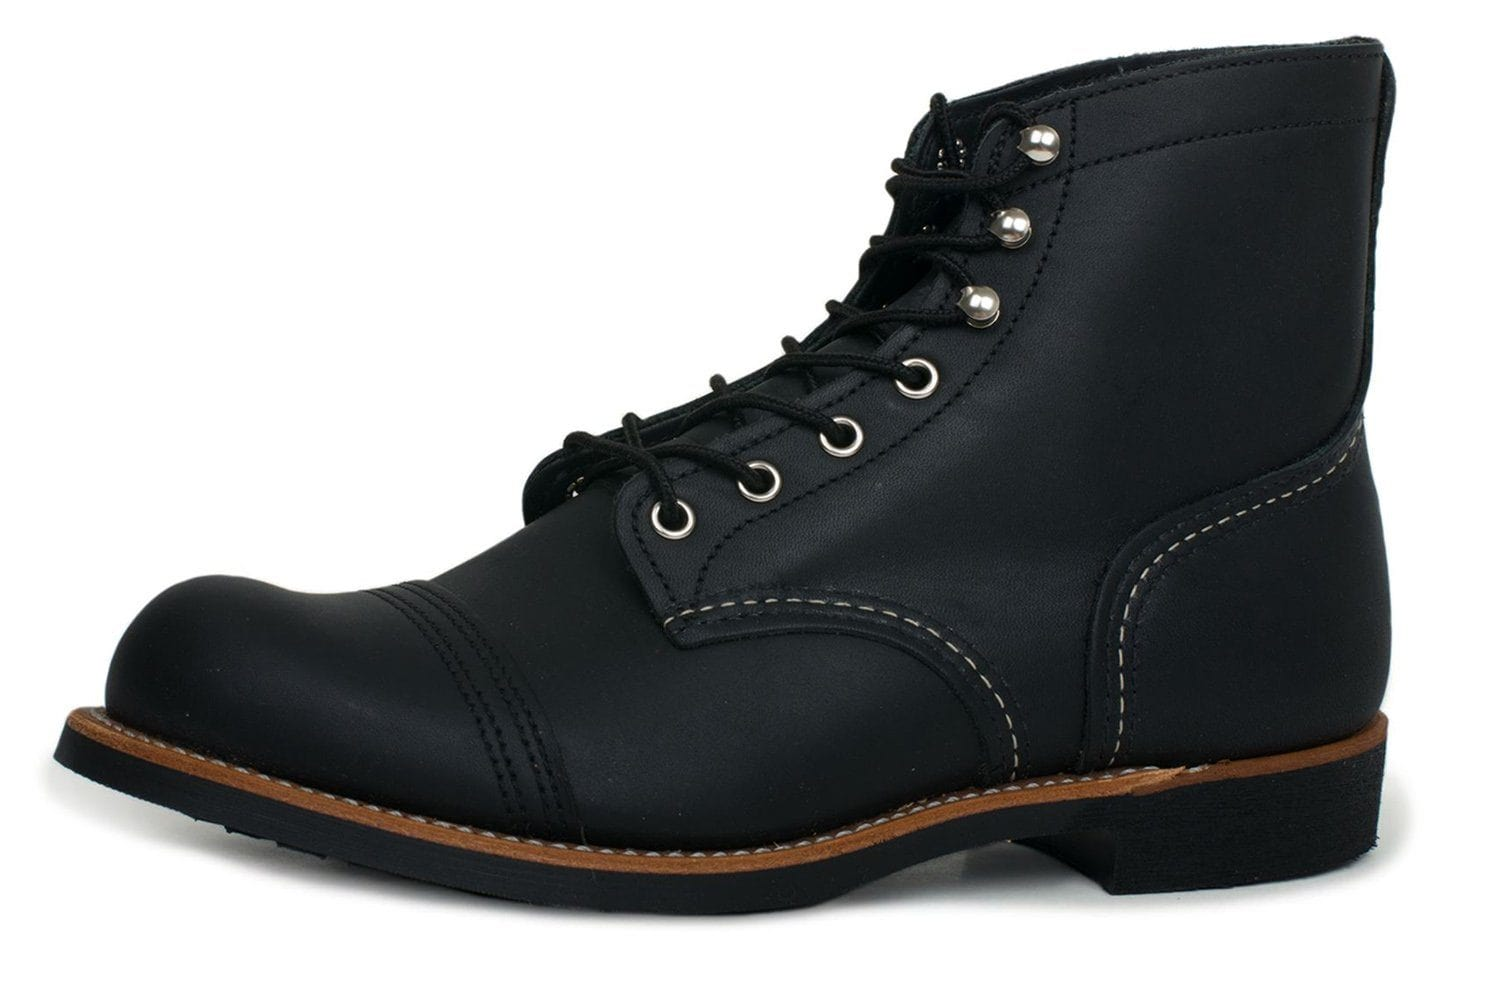 IRON RANGER BLACK HARNESS-08084 MENS FOOTWEAR RED WING SHOES